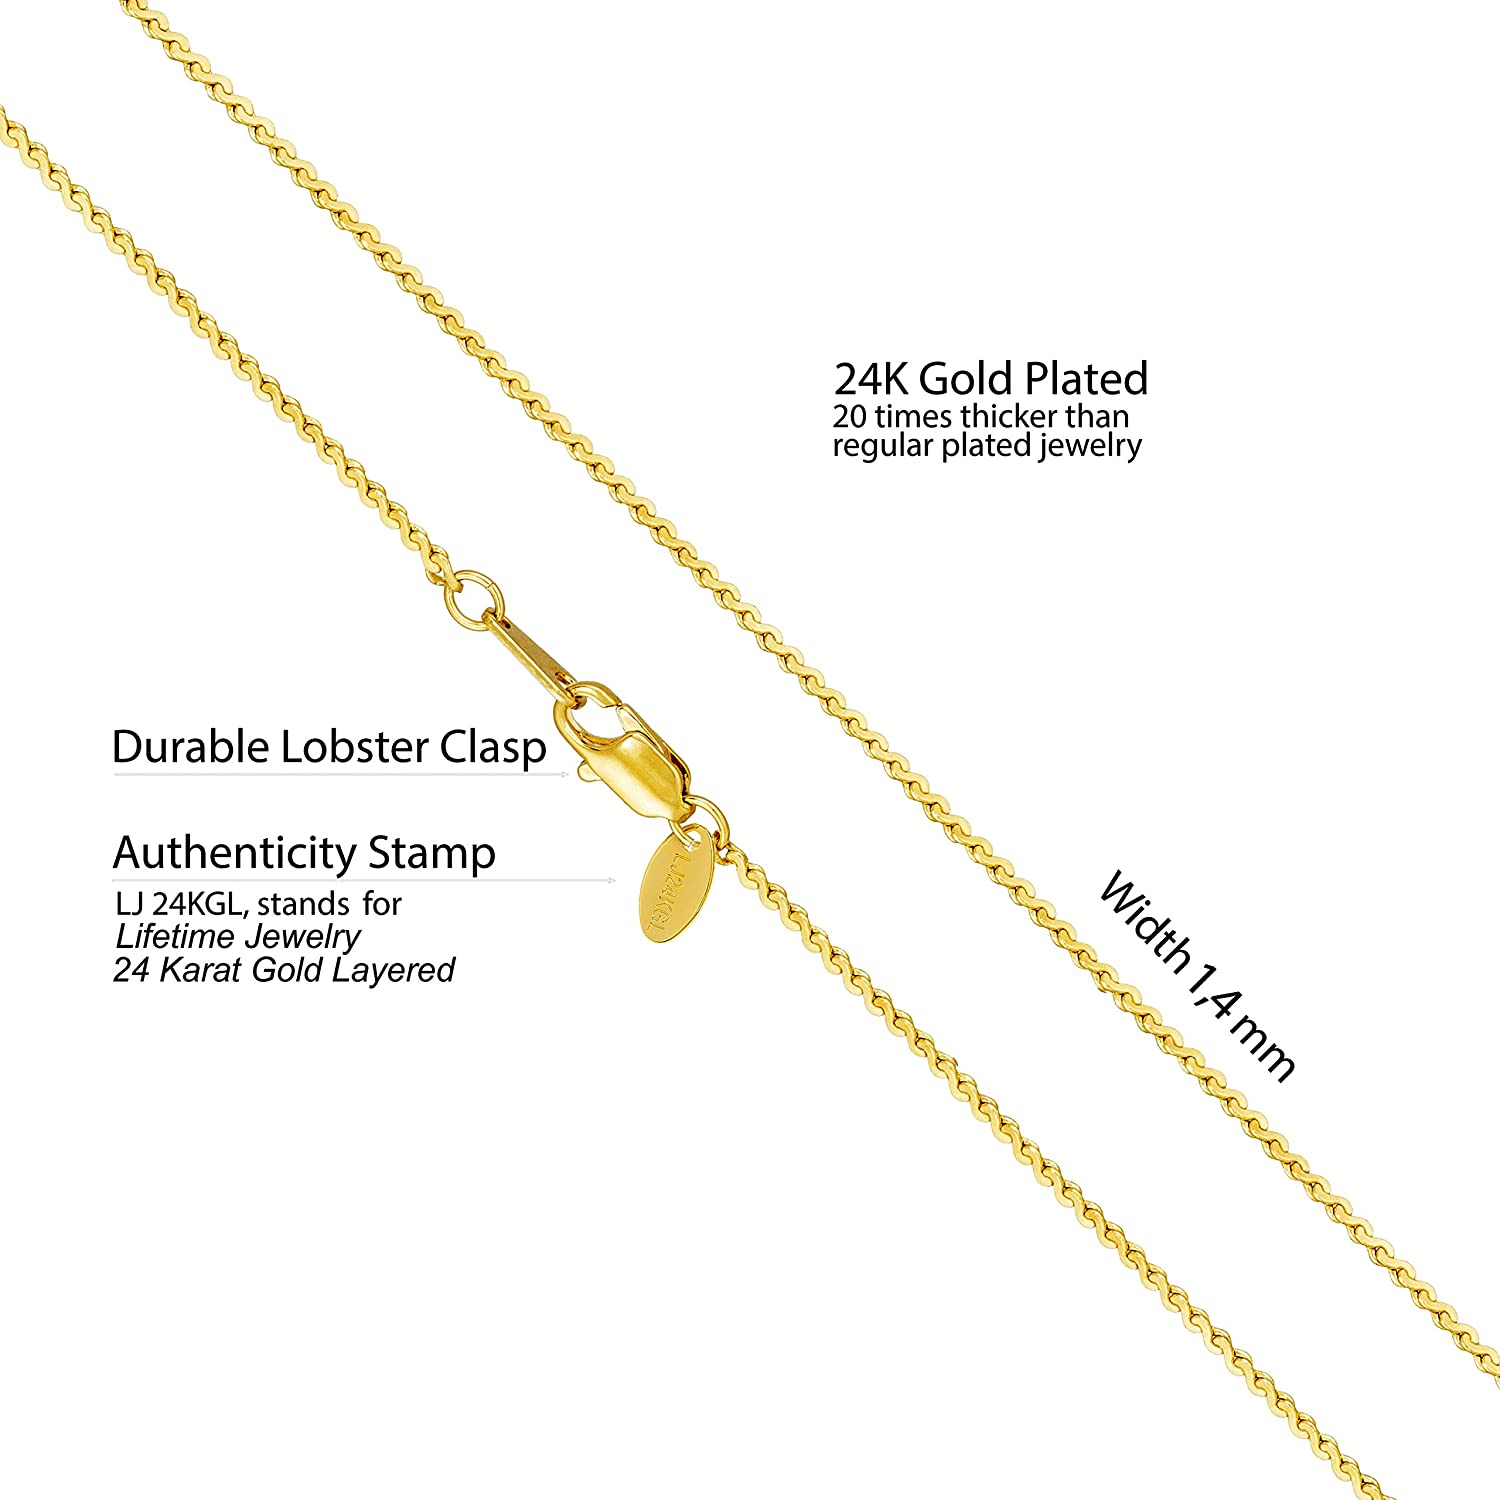 Dainty and Simple 20X More Real 24k Plating Than Other Thin Pendant Necklaces Lifetime Jewelry Gold Necklace for Women /& Girls Lifetime Replacement Guarantee 16/'/'- 30/'/' 1.4mm Serpentine Chain